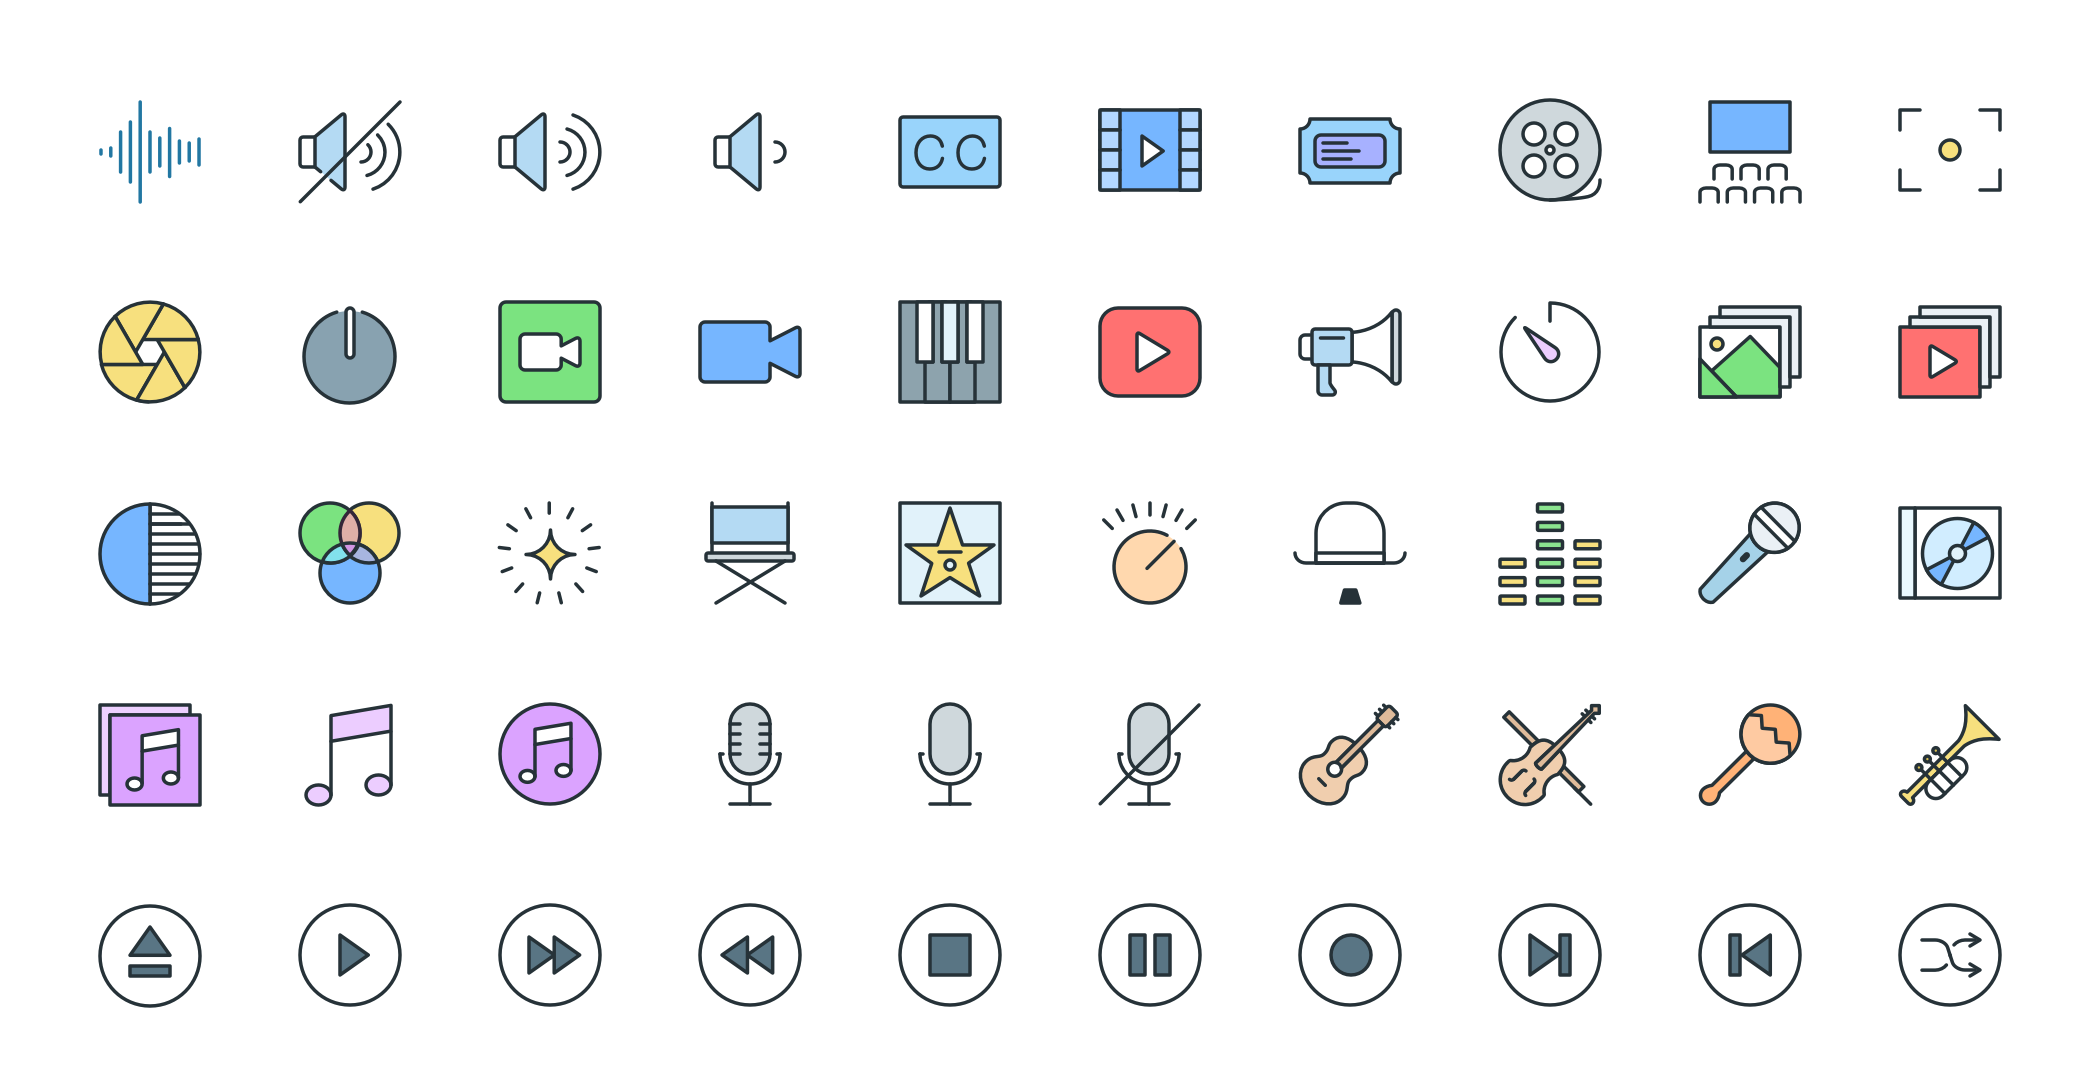 Free Download: Multimedia Pioneer Icons